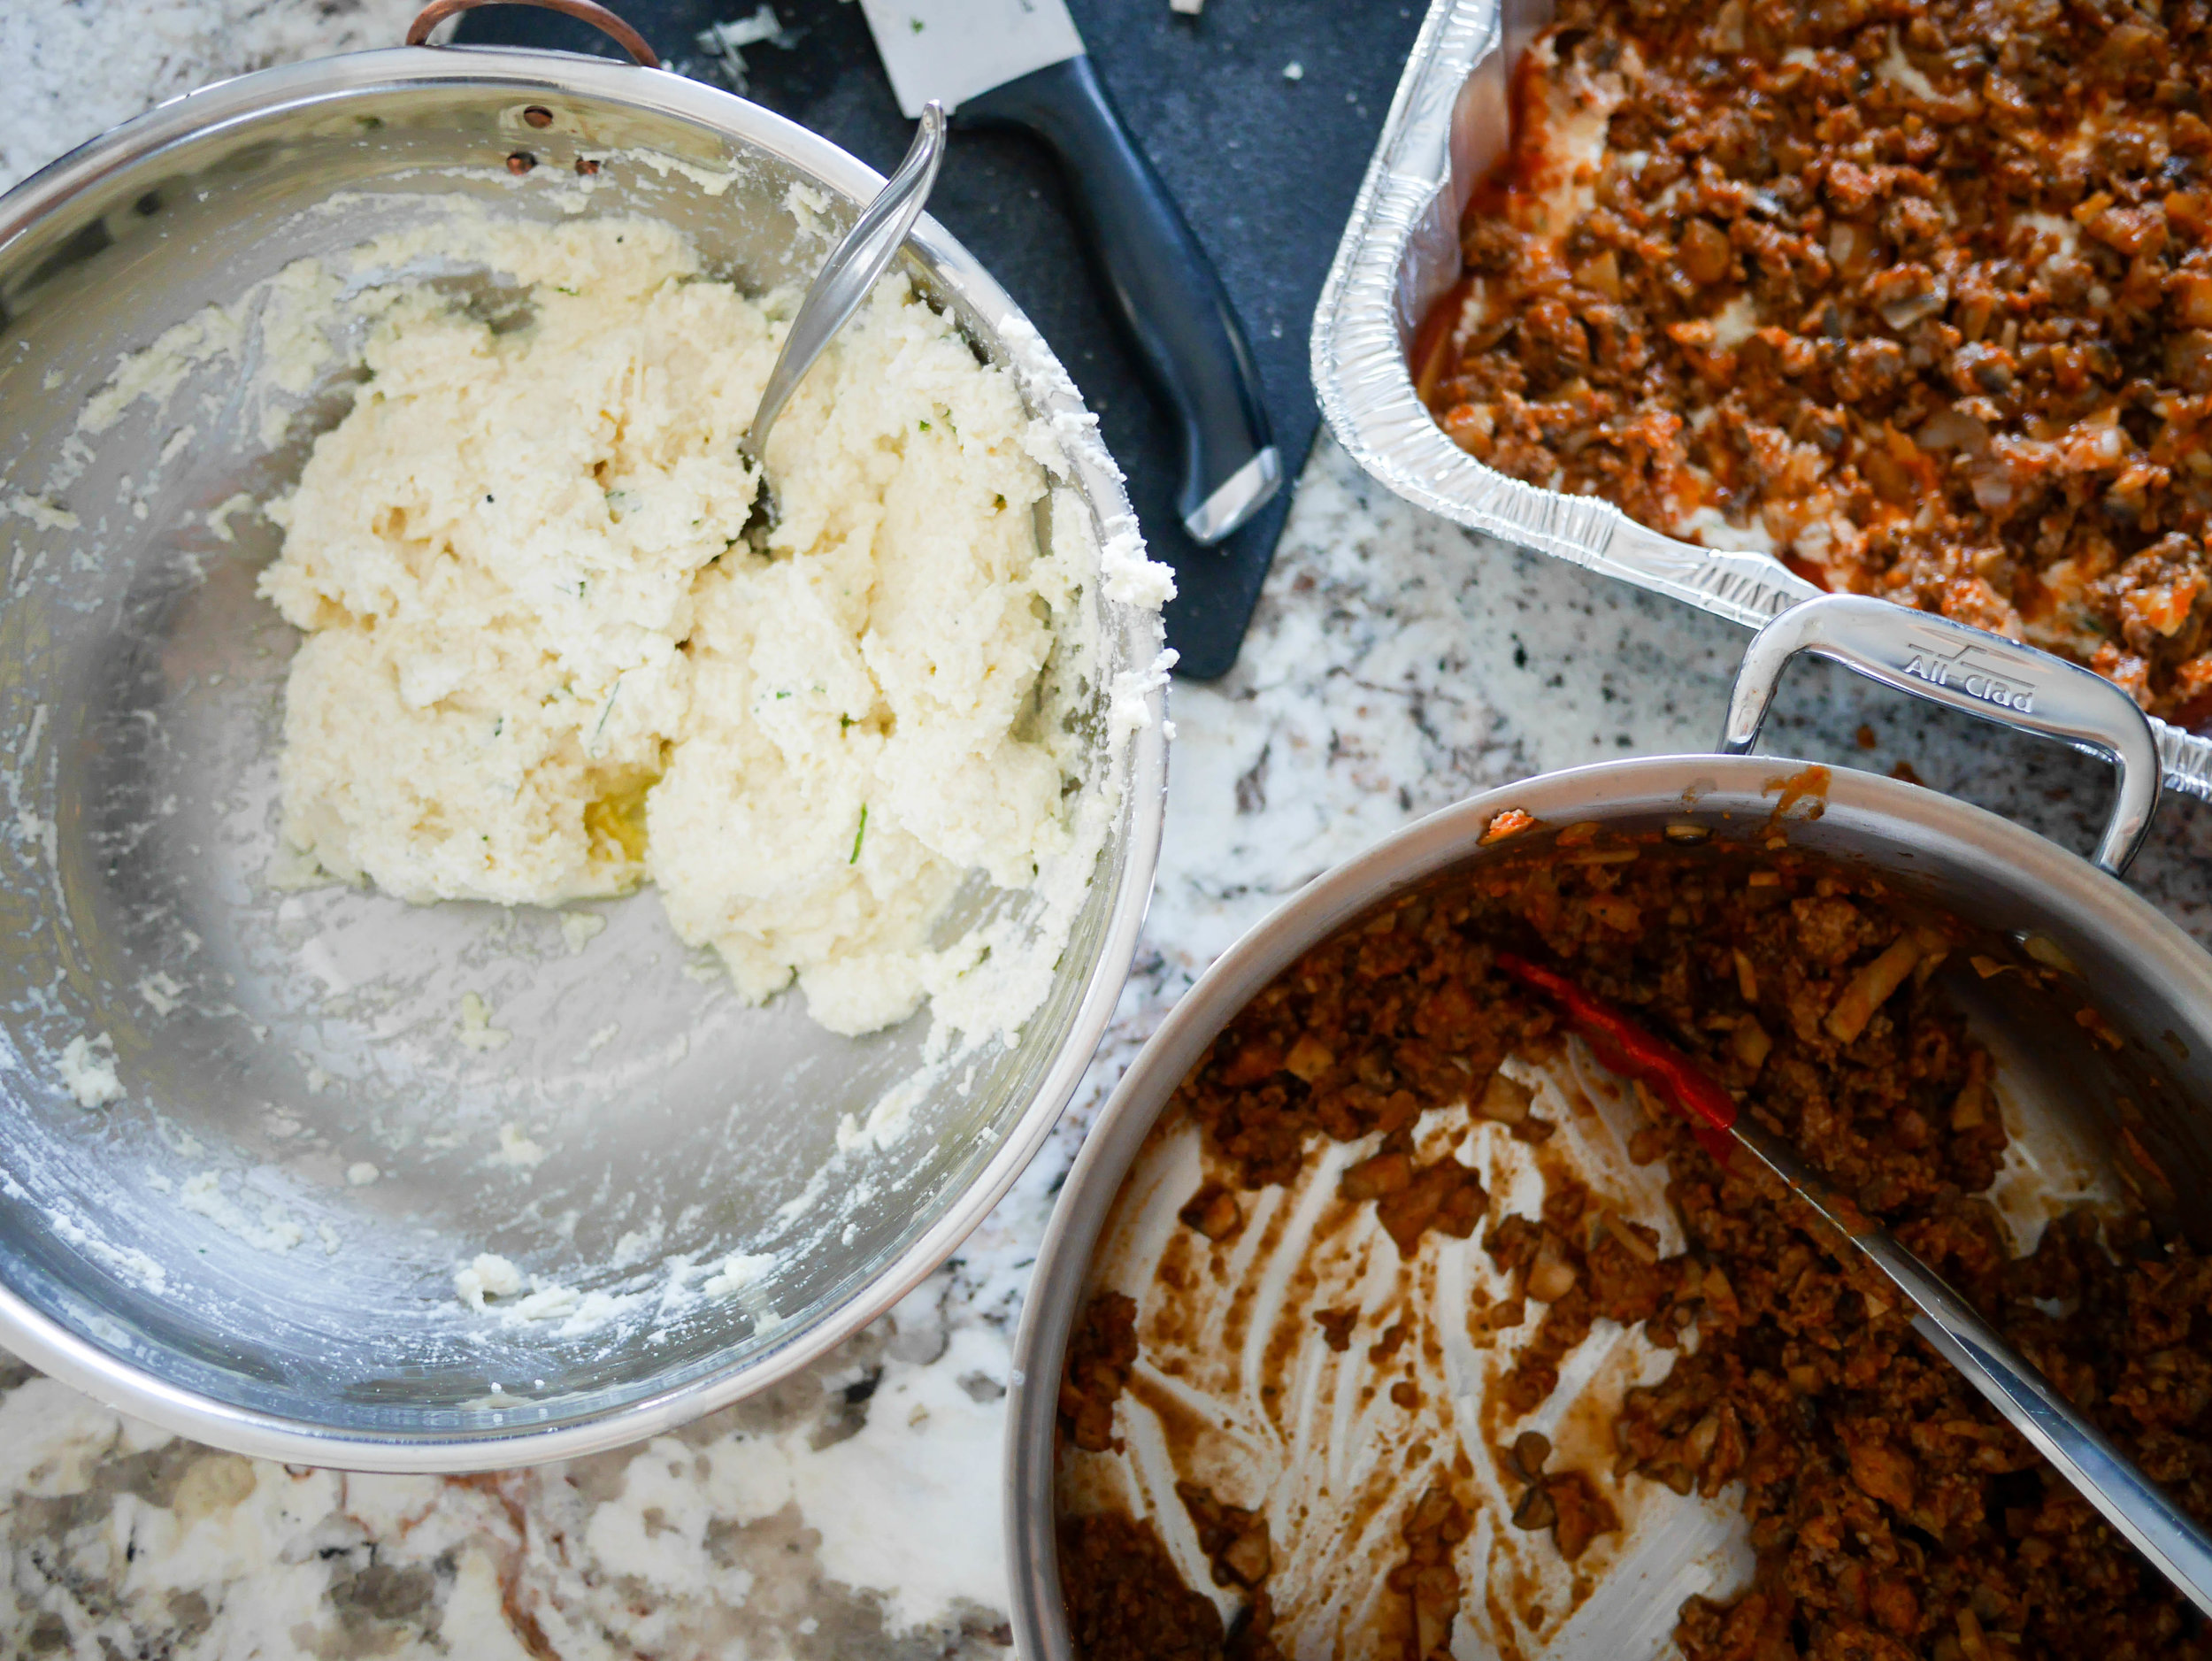 It's best to make giant batches of the ricotta and sausage mixtures - everyone knows 2 lasagnas are better than 1!